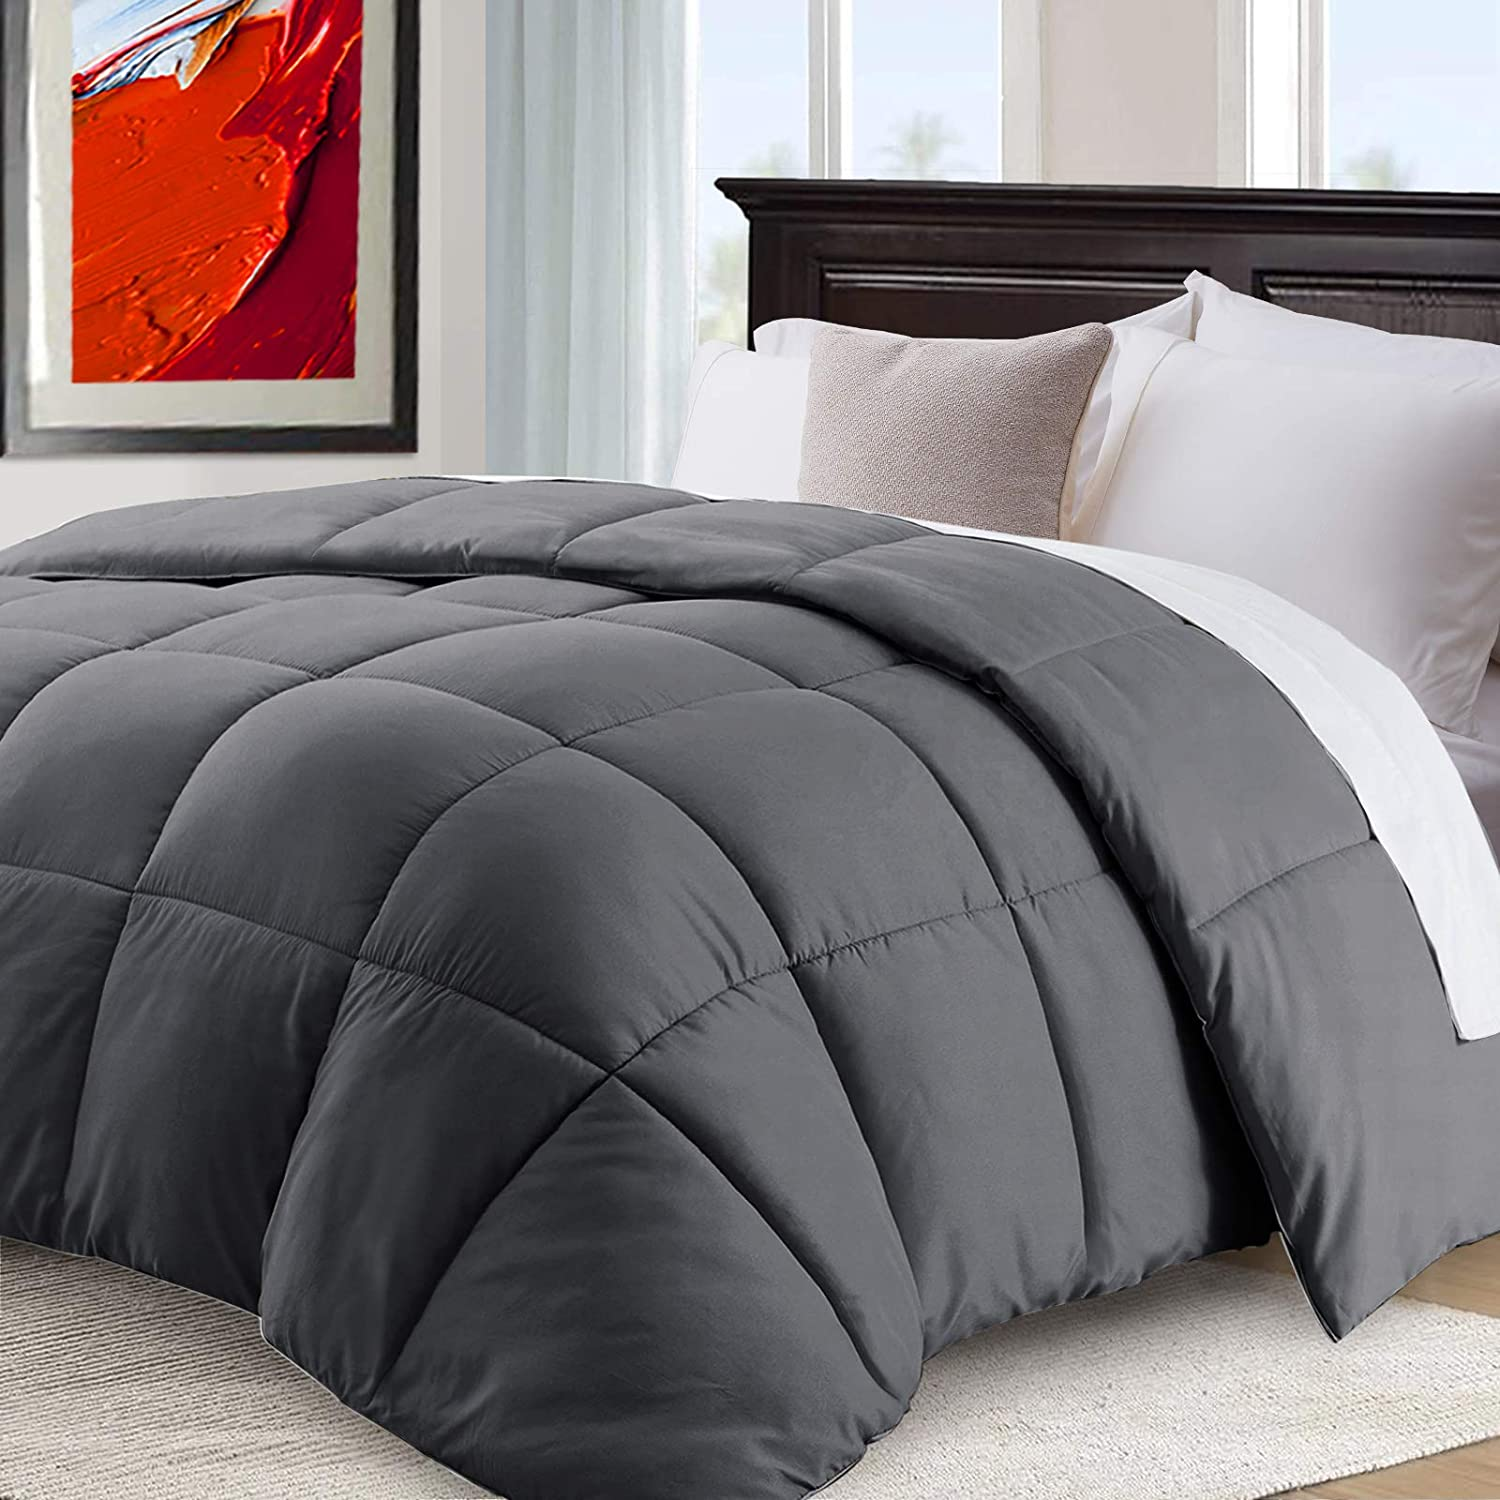 Ranking TOP20 CHOPINMOON All Season King Comforter Quilted Altern Cooling Down Max 88% OFF